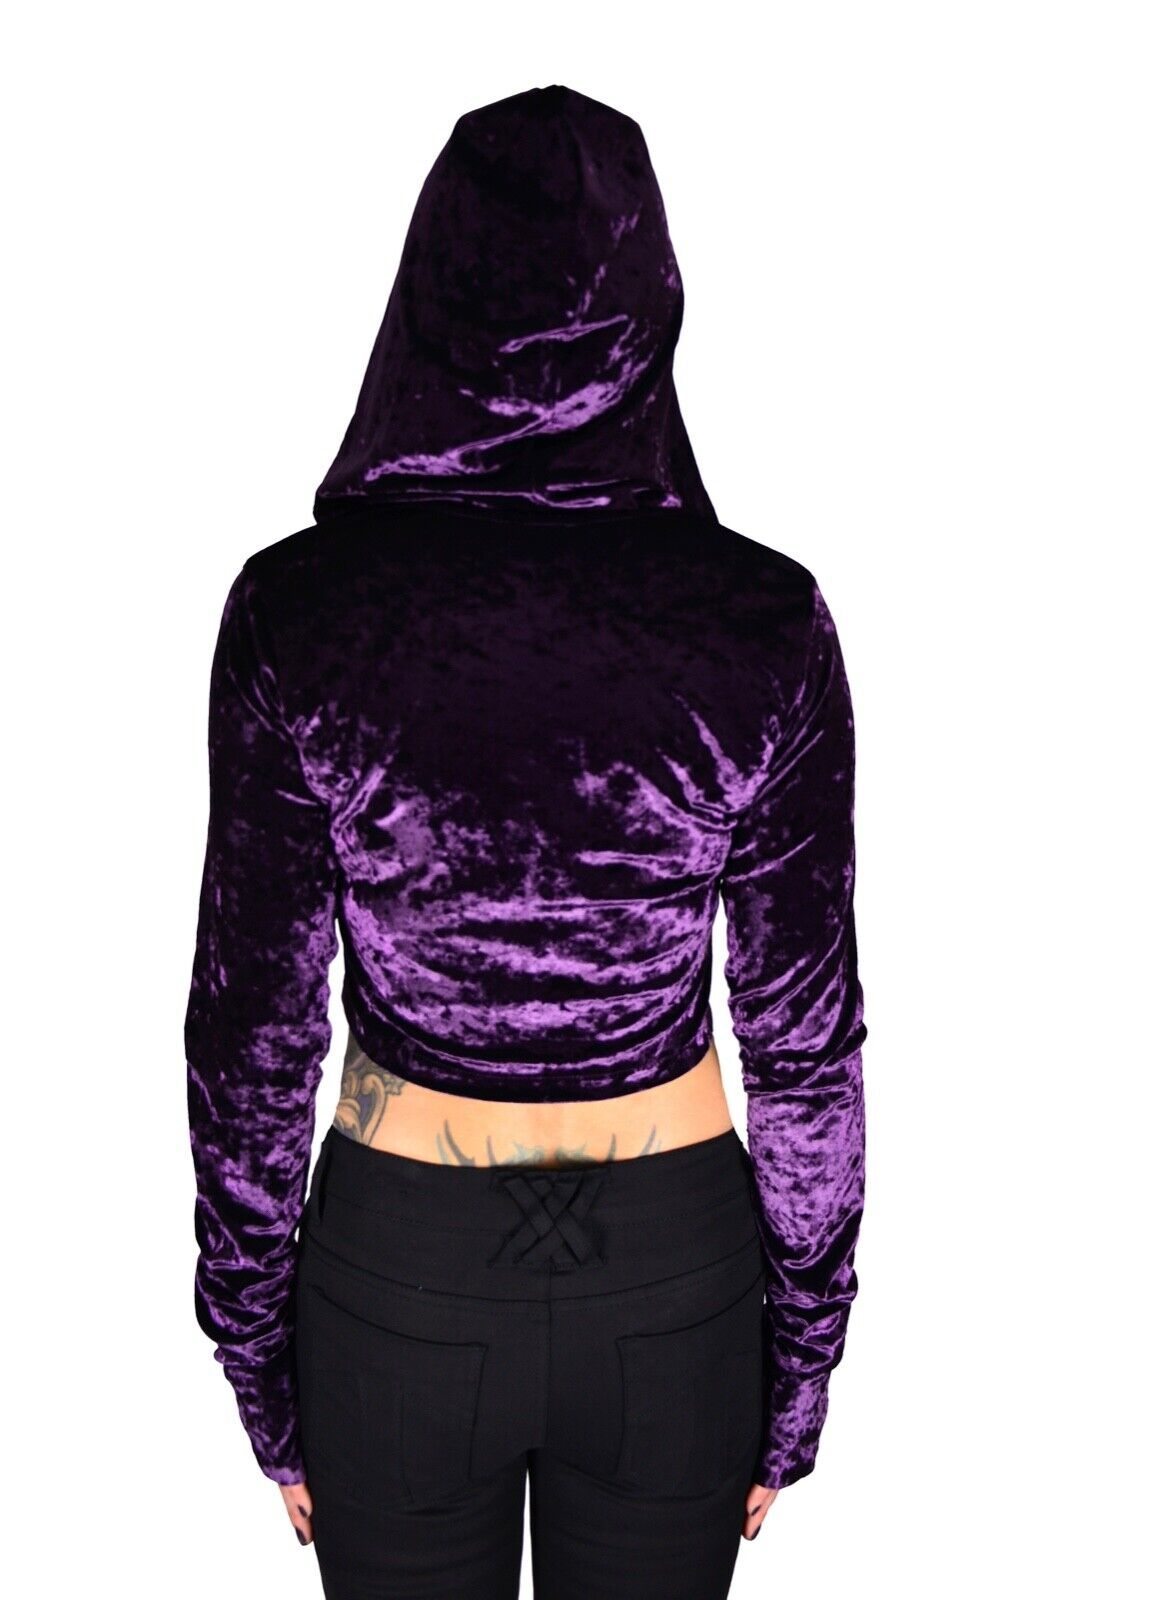 24HRS PLUM VELVET CRUSH LACE UP HOODIE SHIMERING SEXY DOLL SHIRT Clothing, Shoes & Accessories